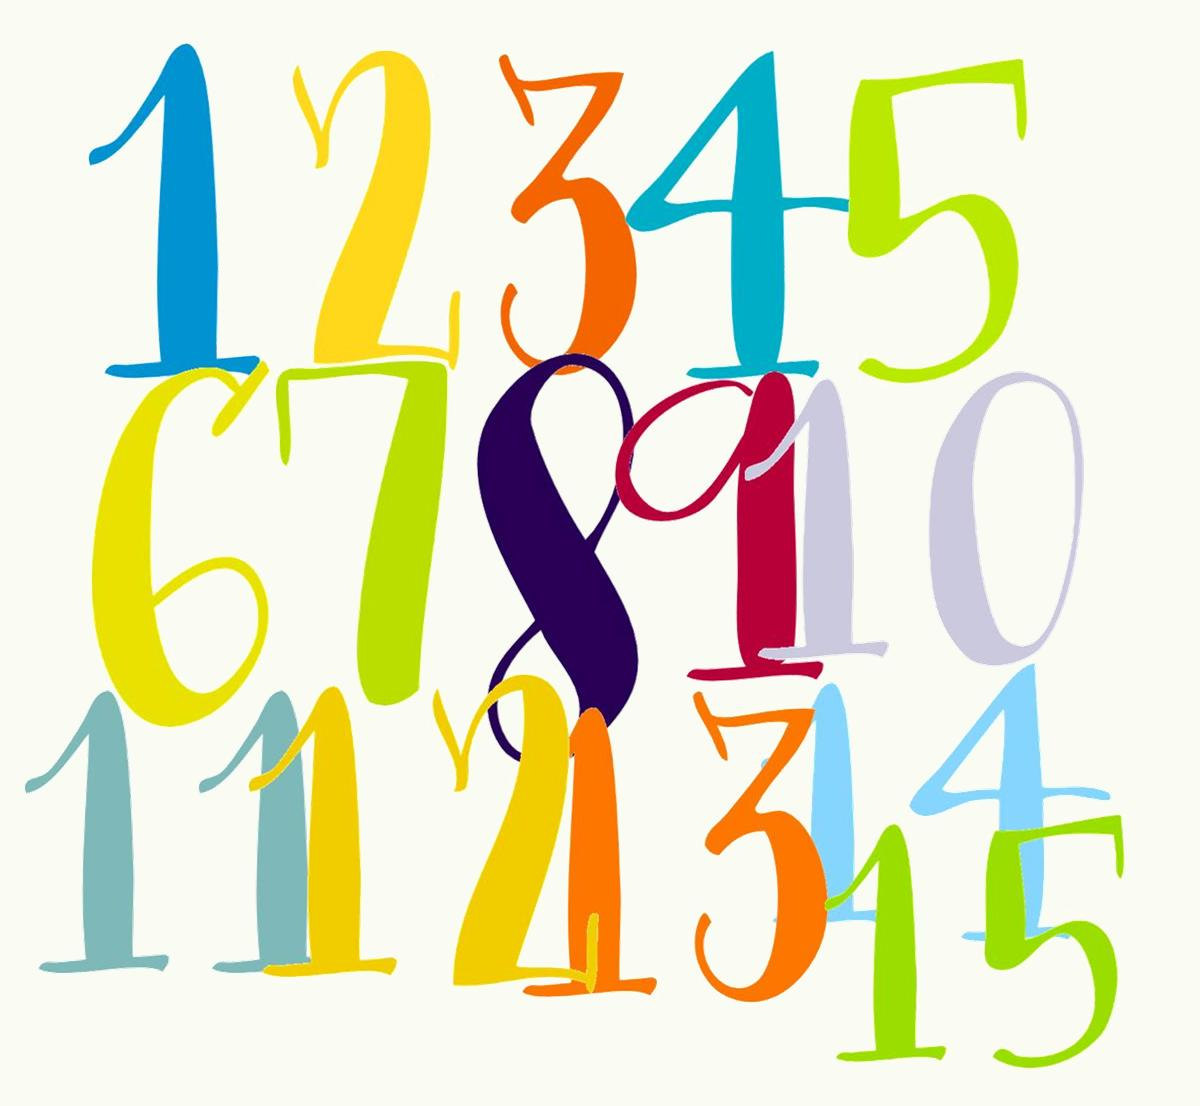 Clipart Numbers 1 20